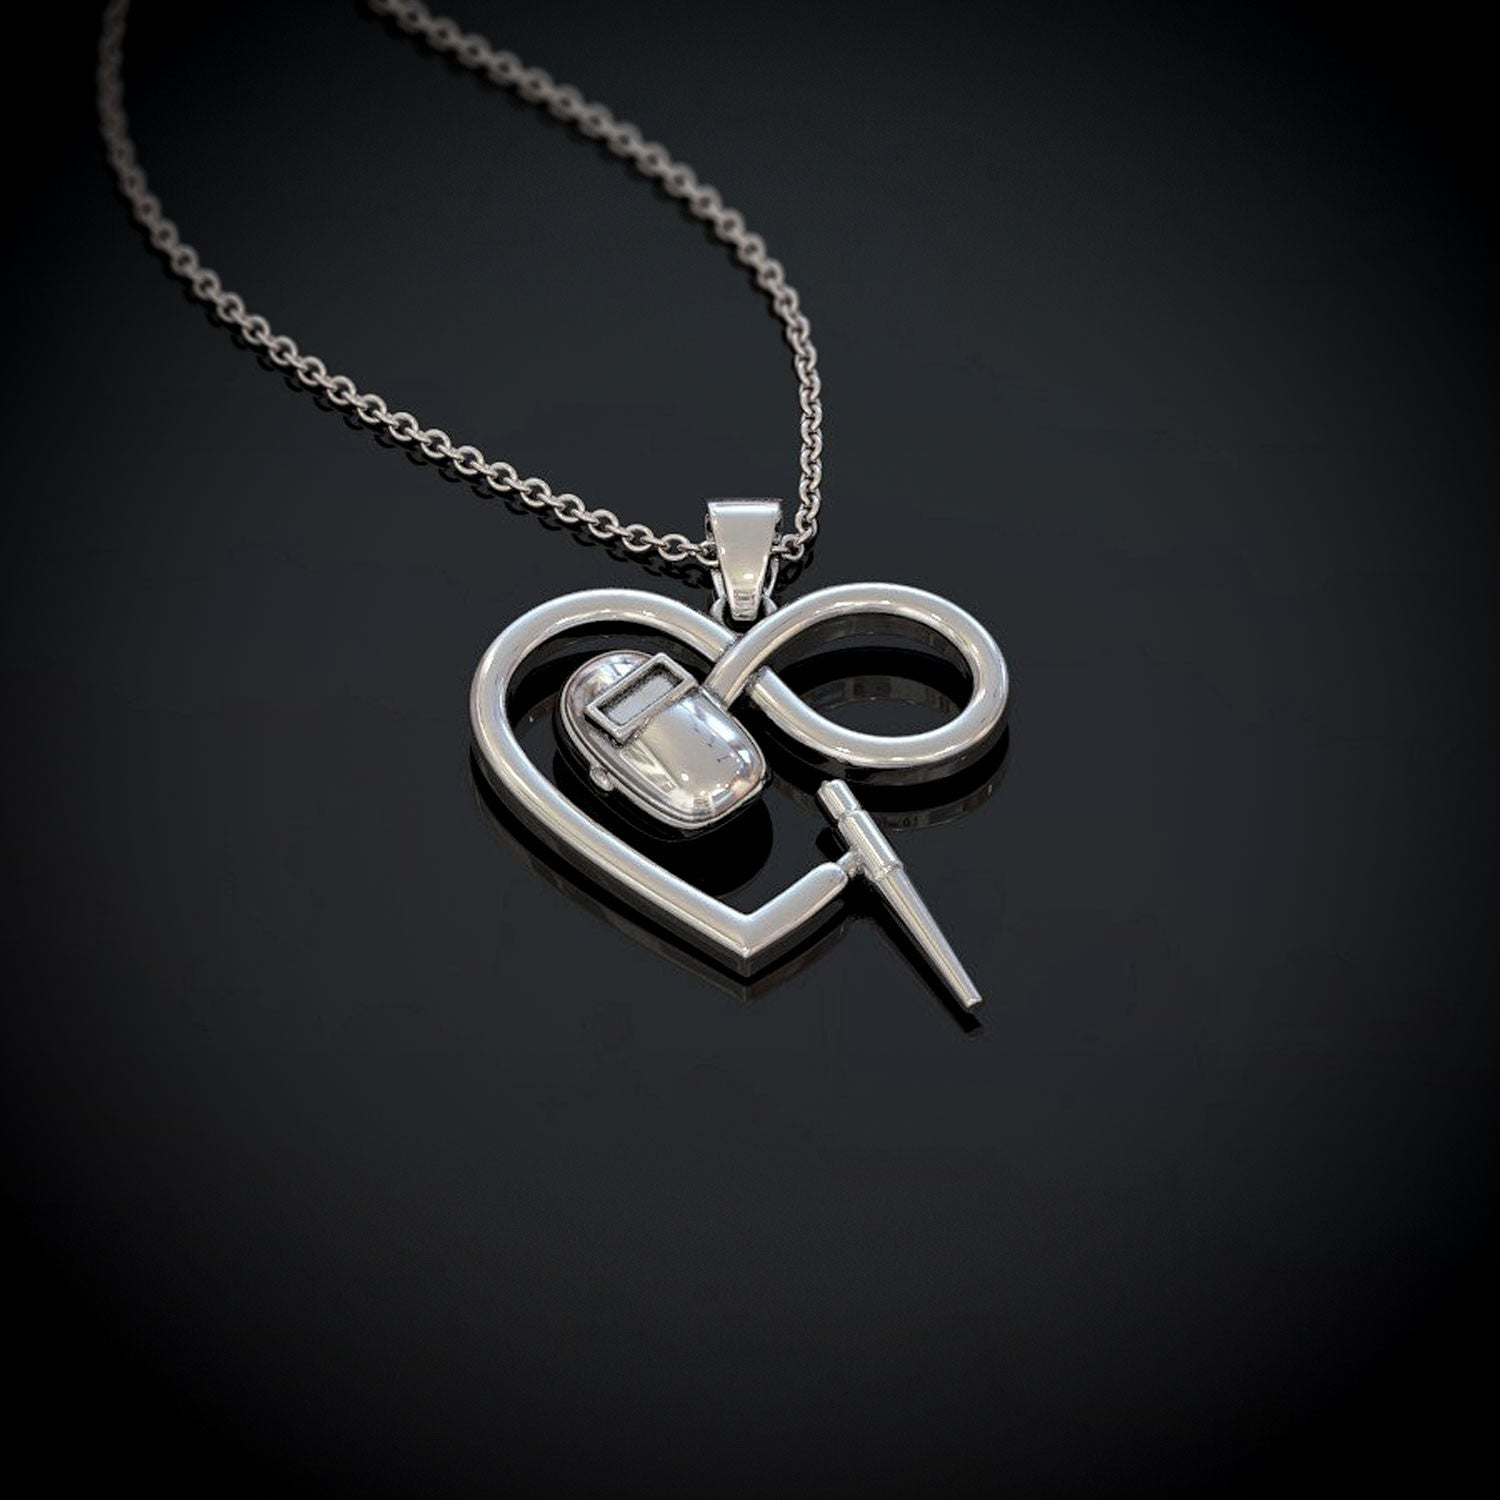 Welder Infinity Necklace